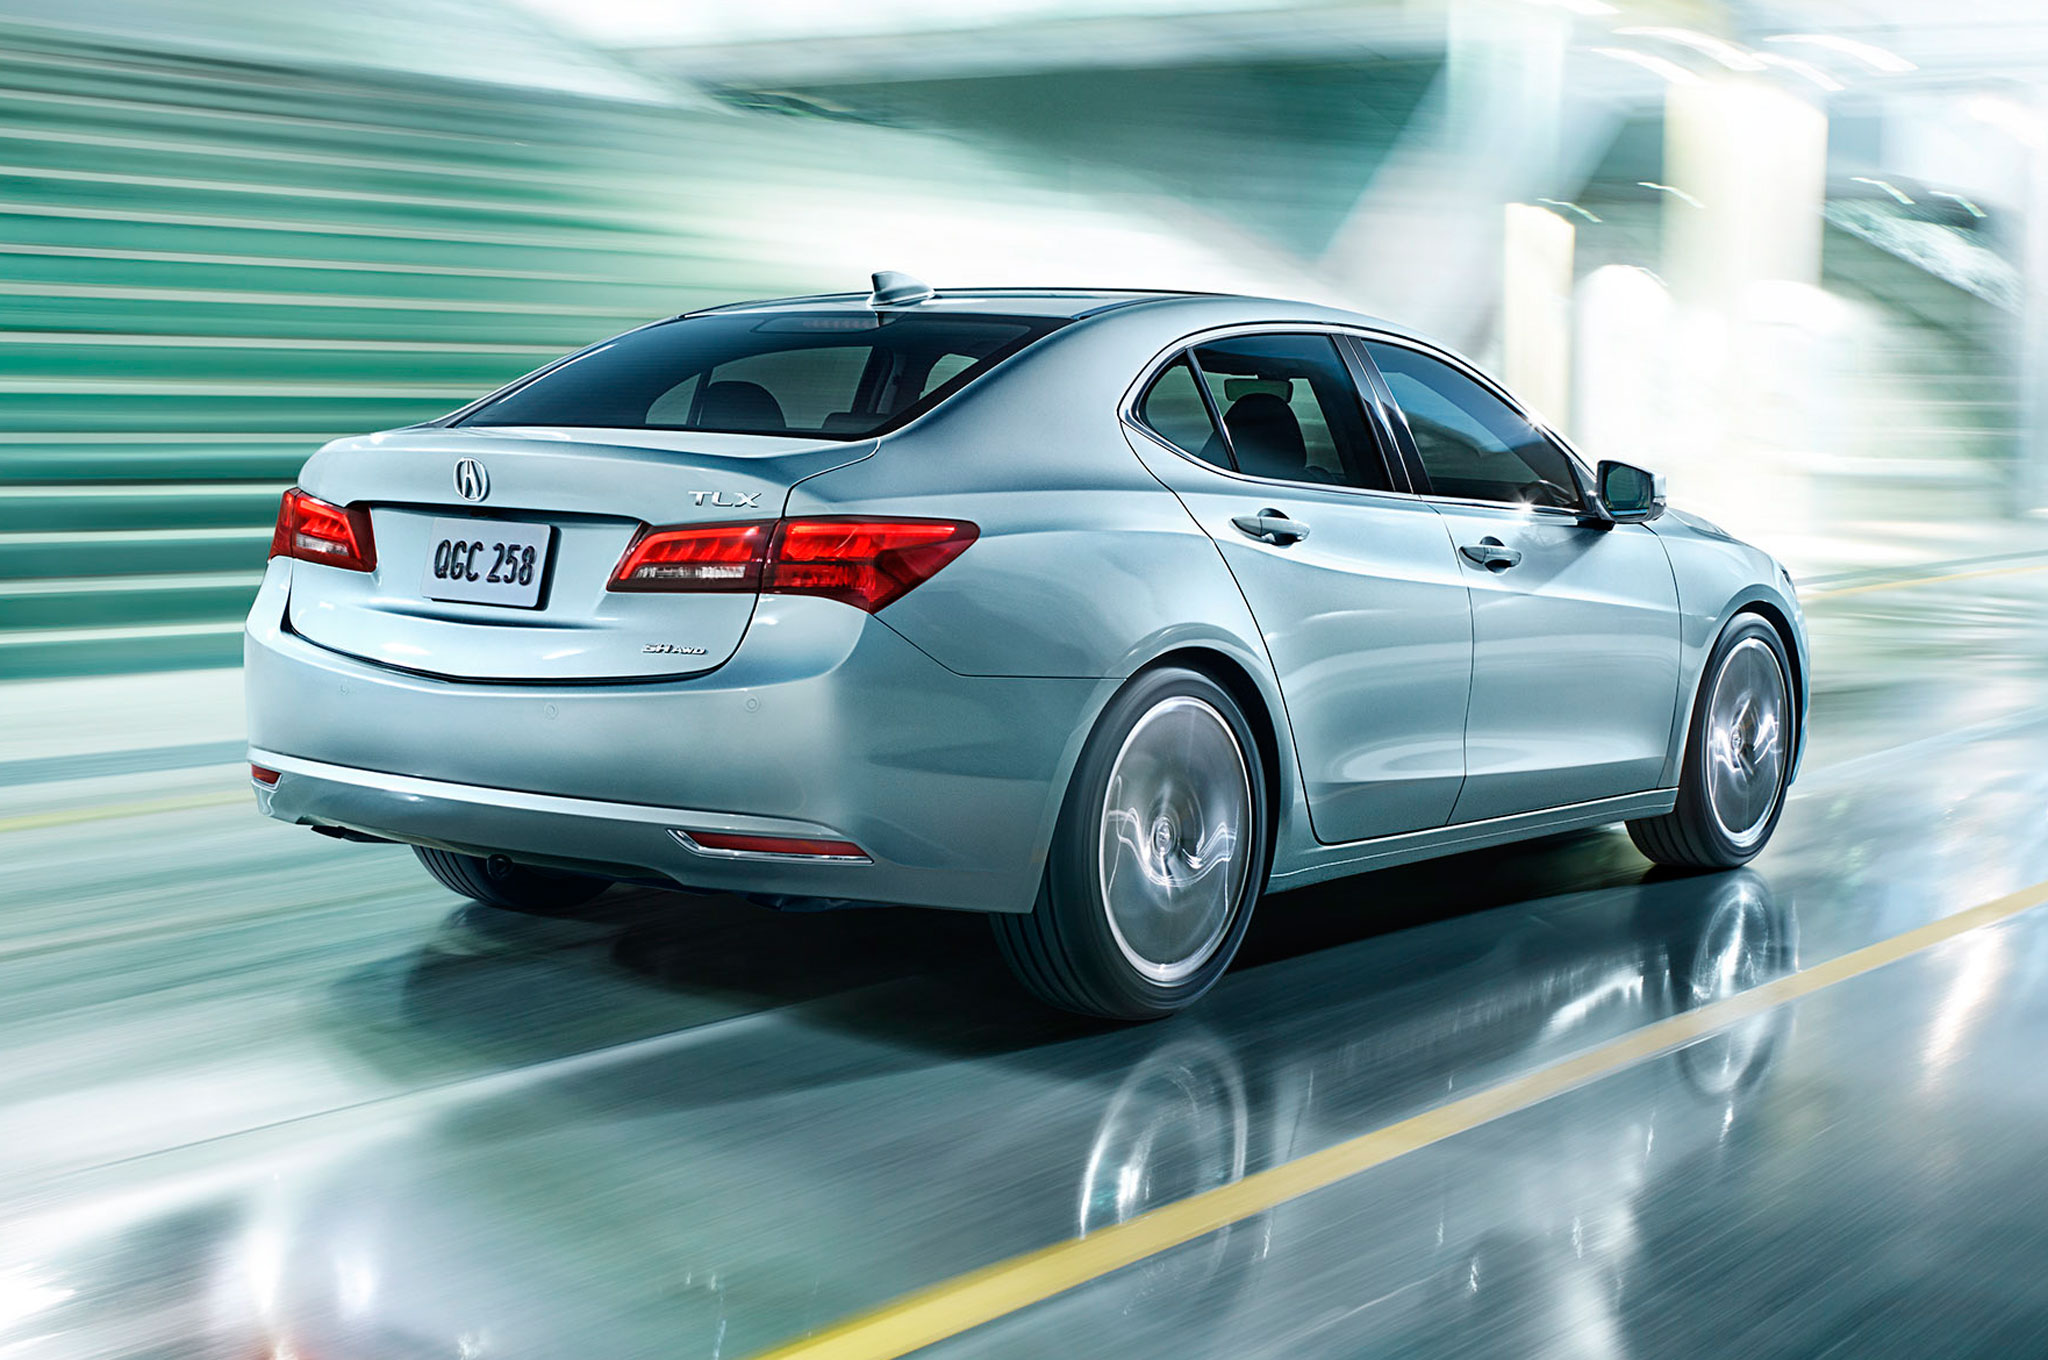 2015 Acura TLX Rear Motion View1